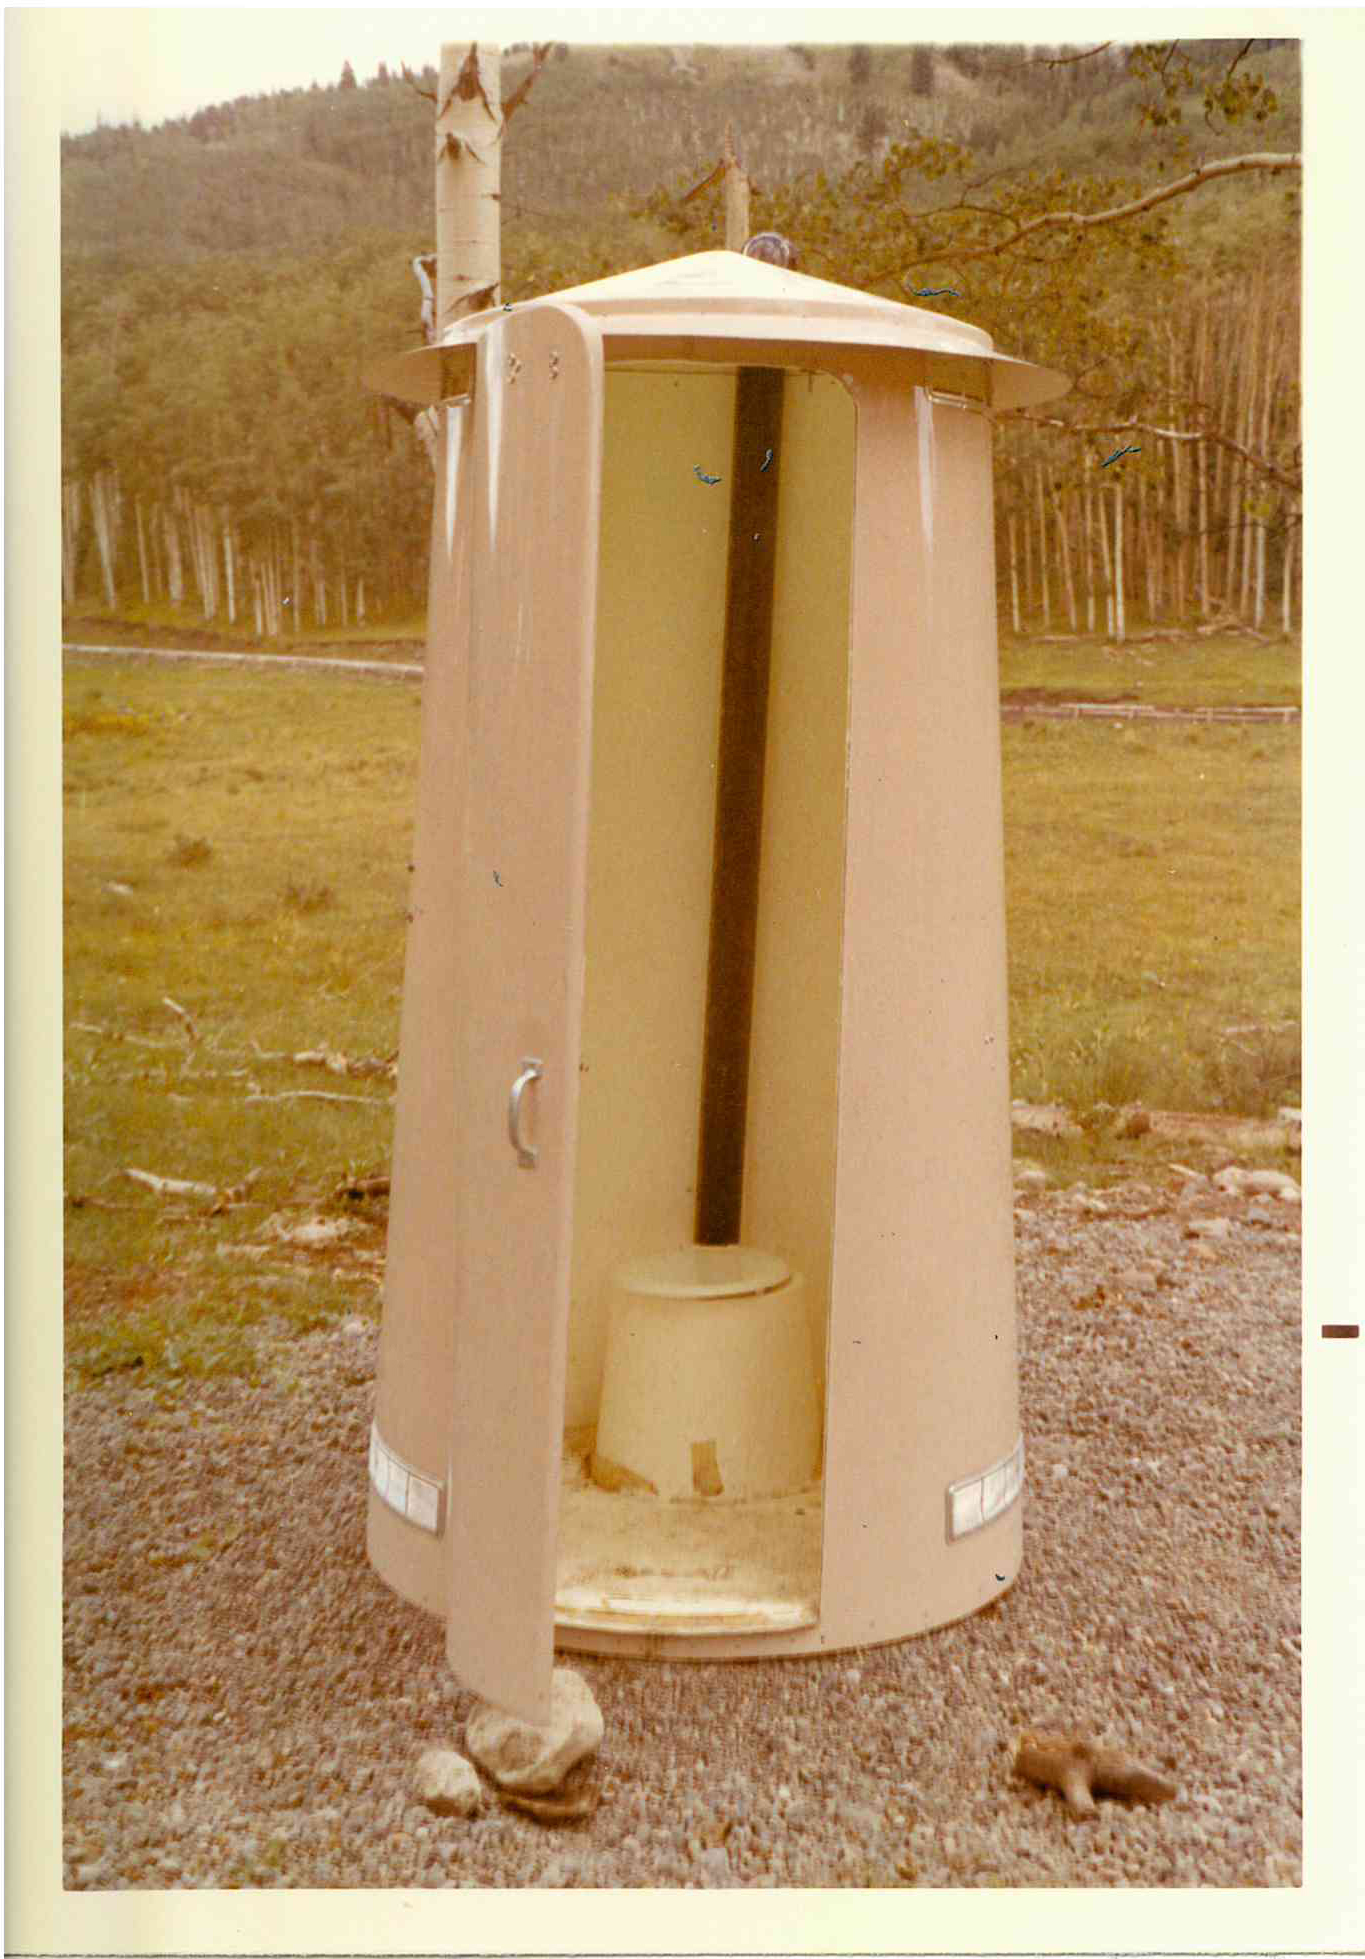 Temporary Toilet from the Silverjack Resevoir located in the Grand Mesa / Uncompahgre / Gunnison National Forest.